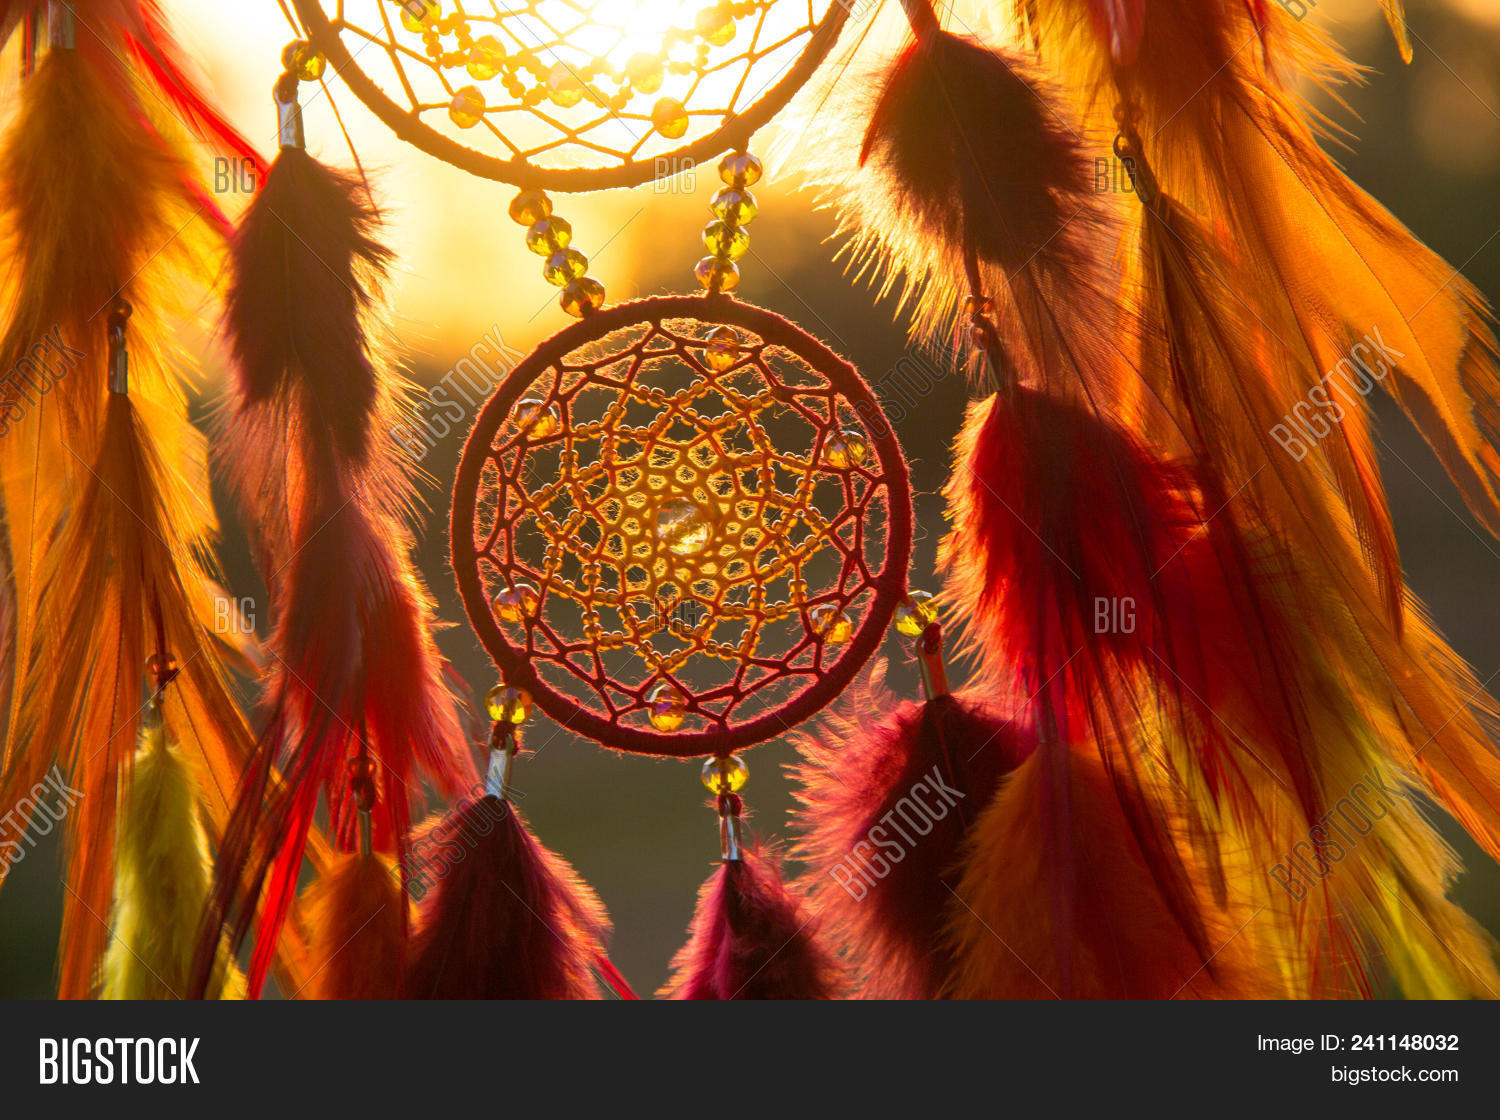 Dream Catcher Feathers Image Photo Free Trial Bigstock